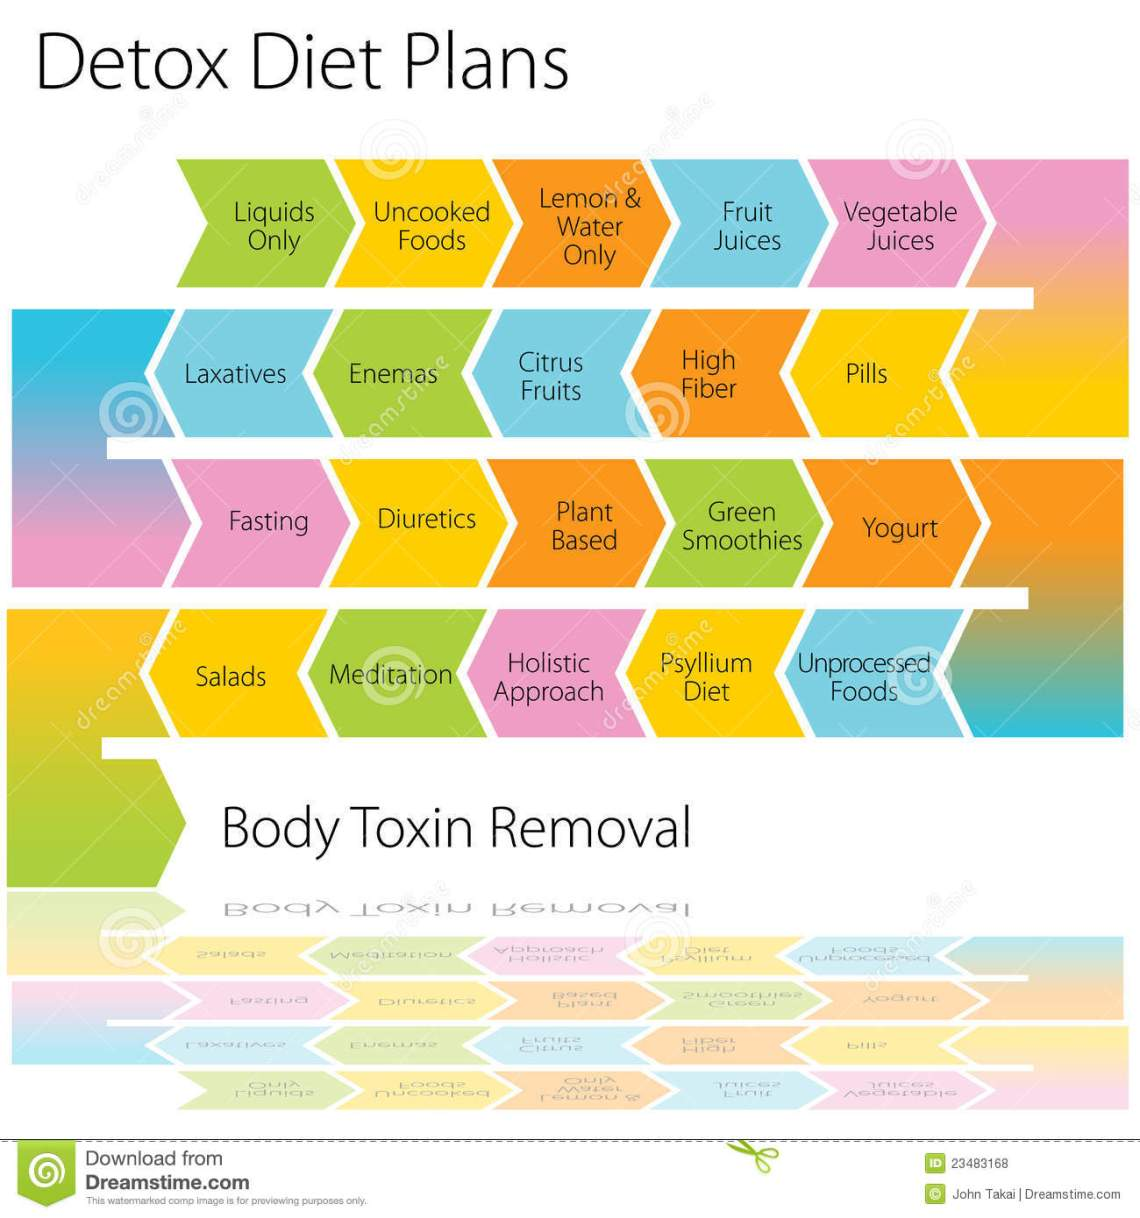 Detox Diet Plans Chart Royalty Free Stock Photos - Image ...